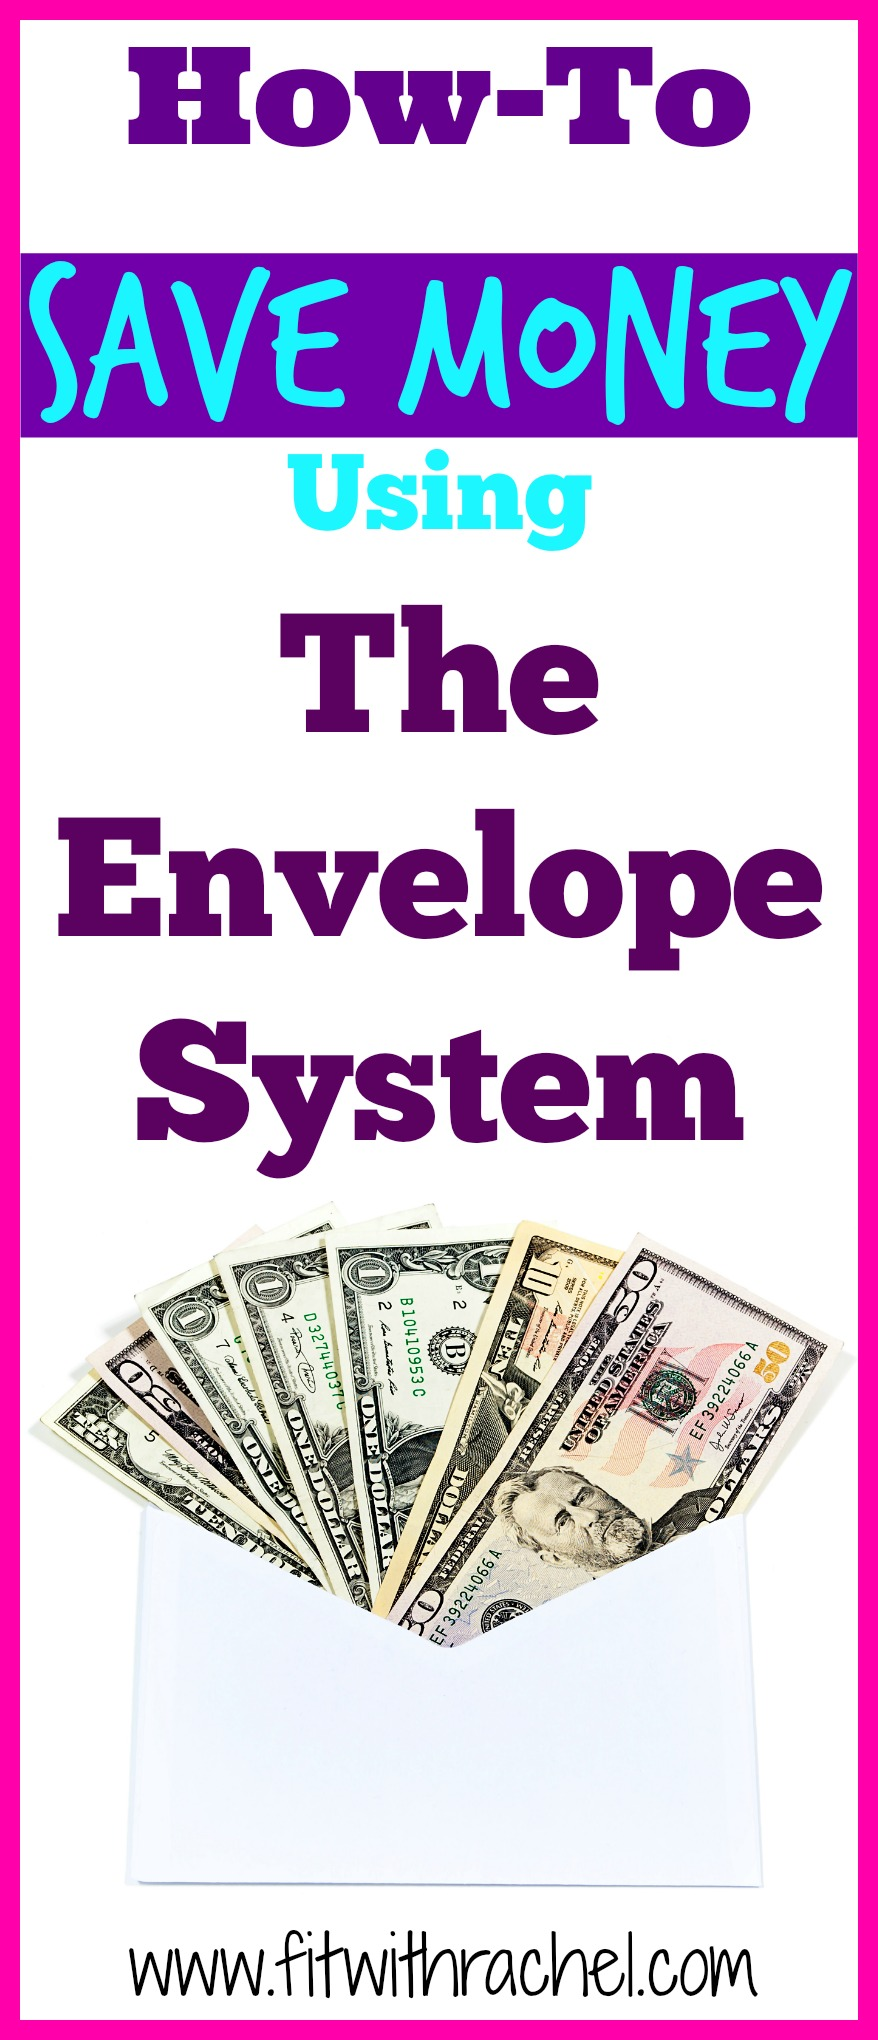 How-To Save Money Using Dave Ramsey's Envelope System